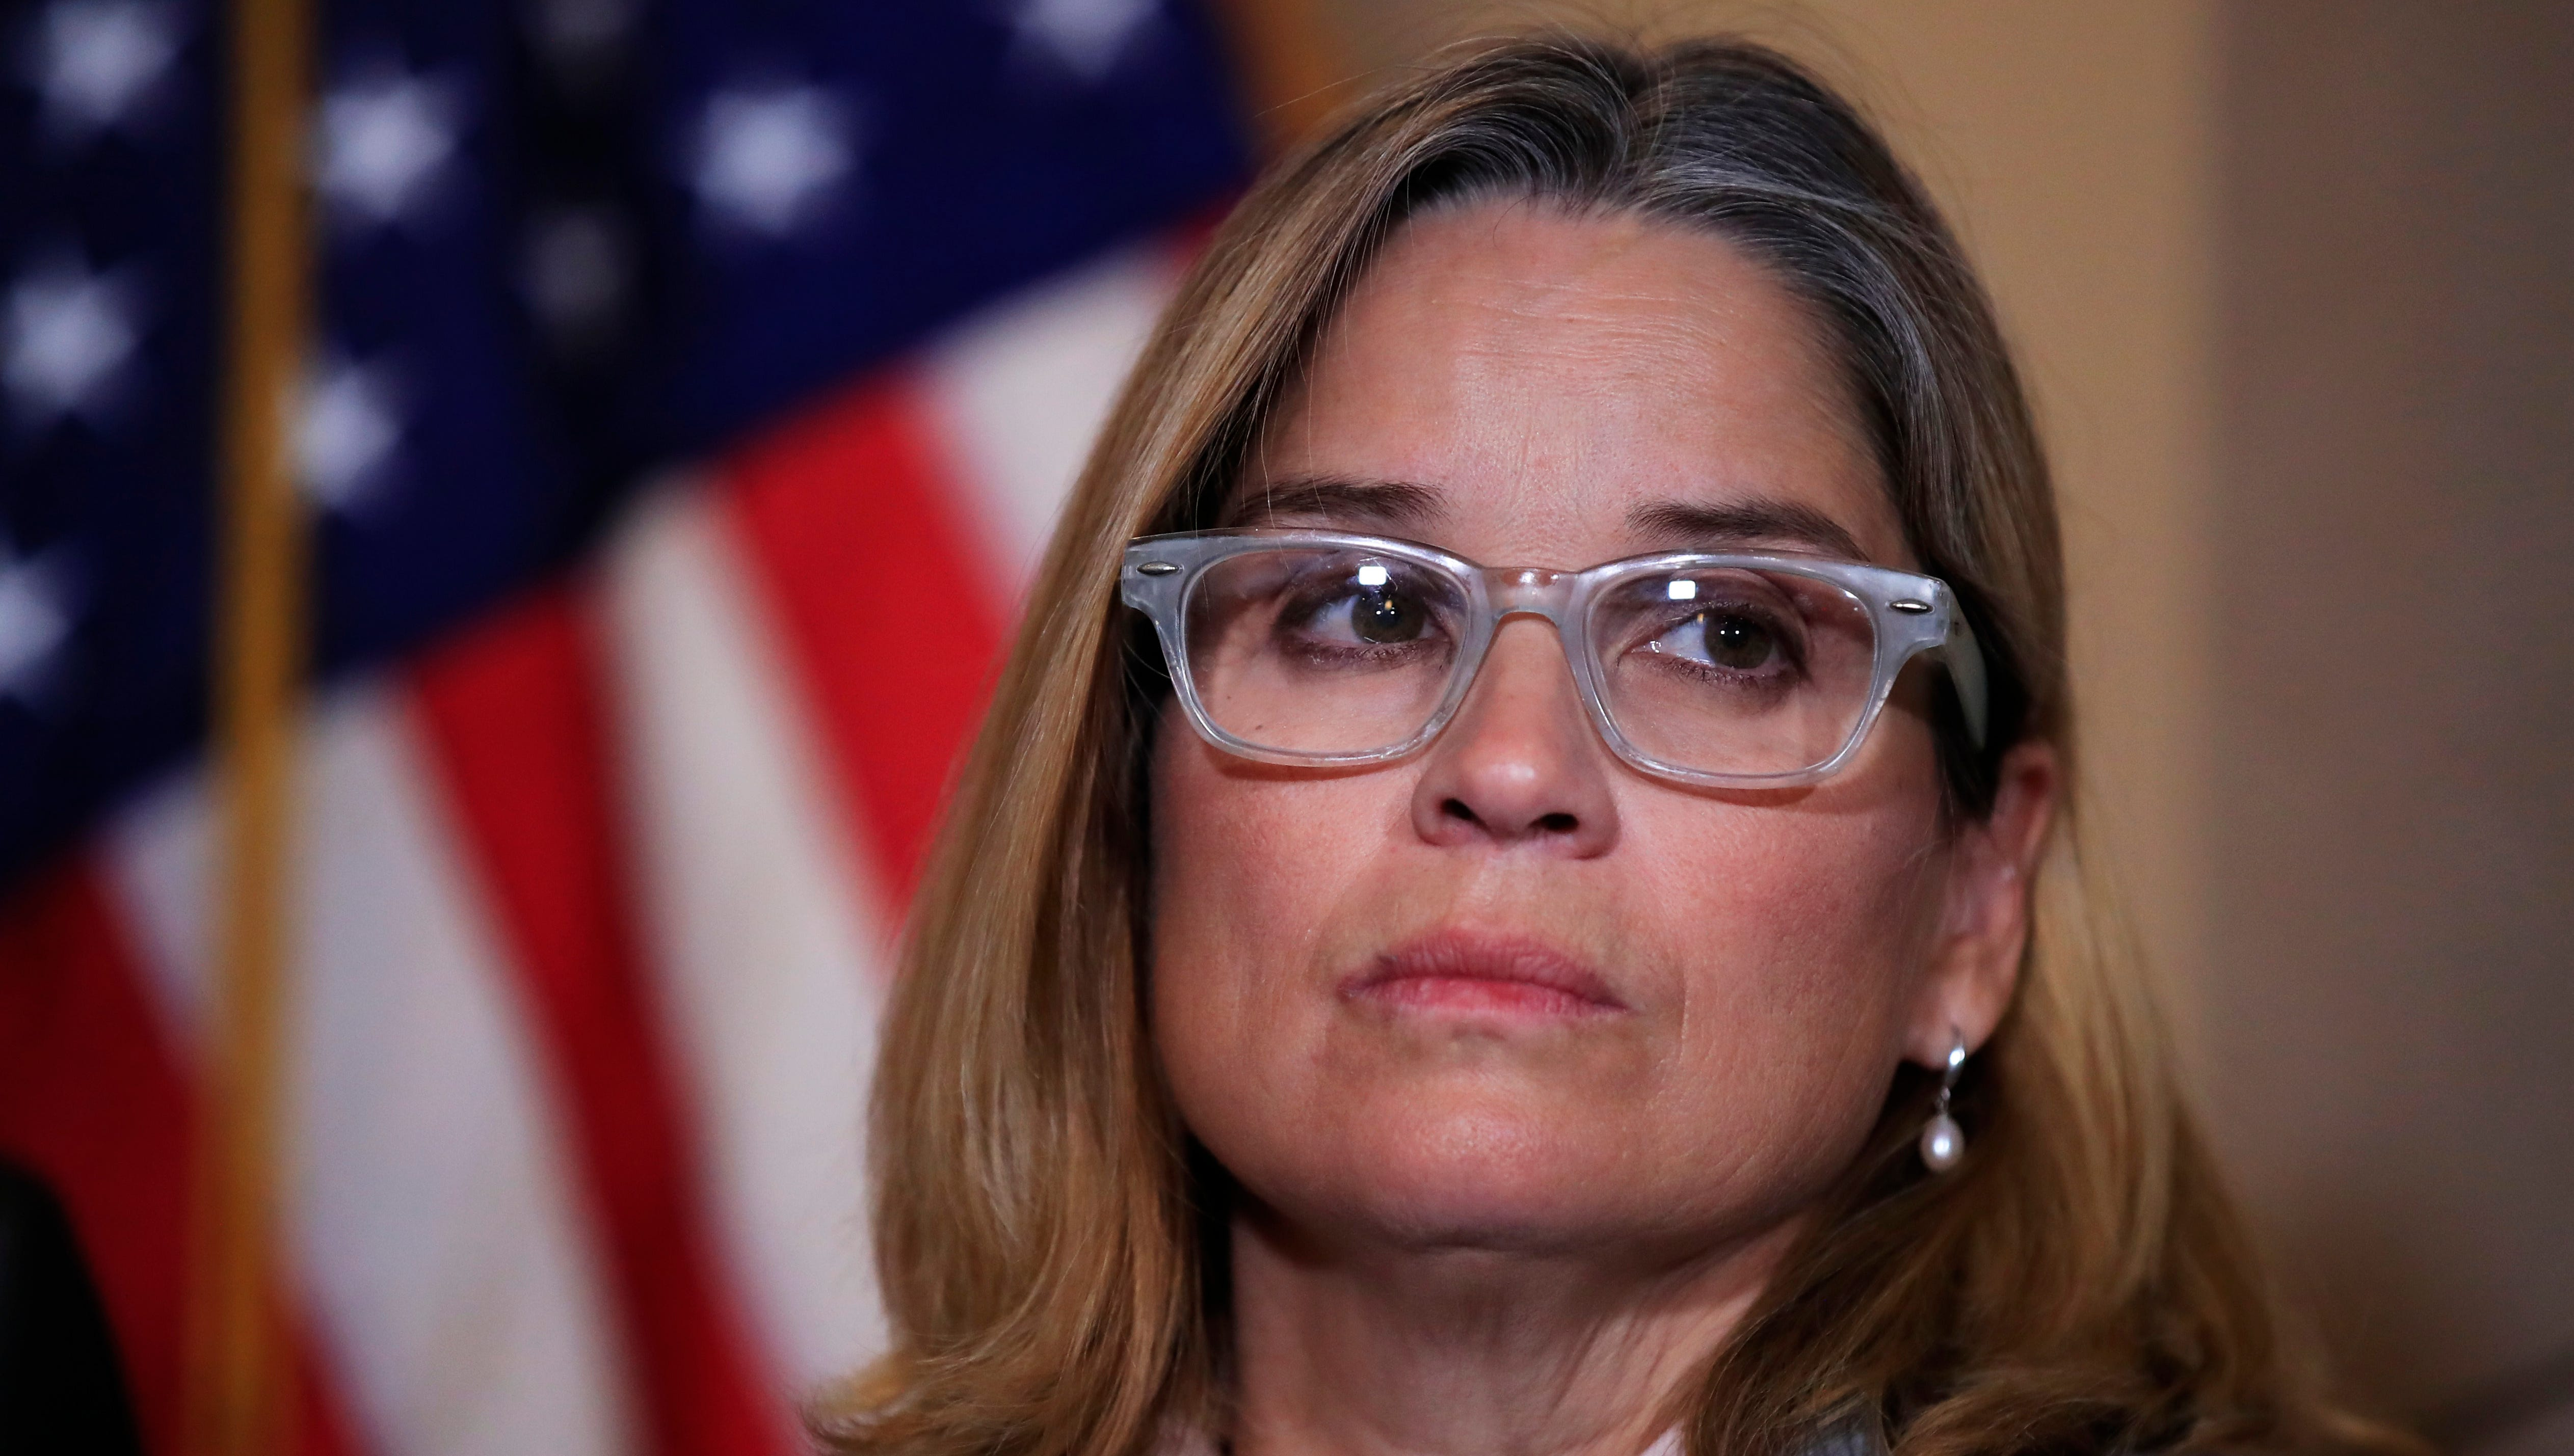 San Juan, Puerto Rico, Mayor Carmen Yulín Cruz, attends a House Democratic Leaders news conference with Democratic Caucus Chairman Rep. Joe Crowley, D-N.Y., on Capitol Hill in Washington, on Nov. 1, 2017.